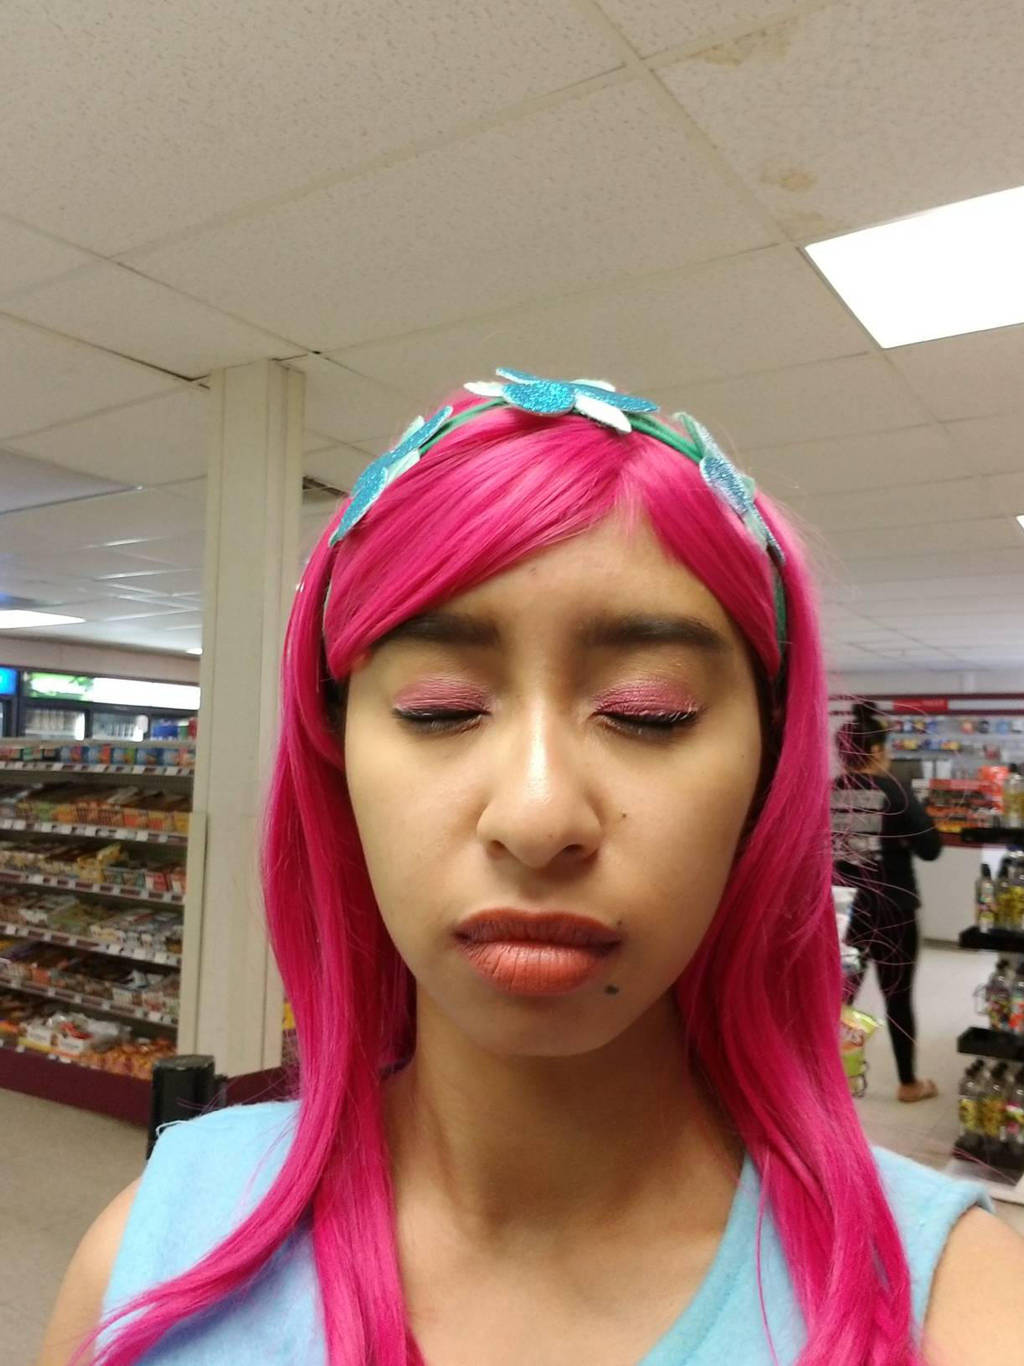 I Dress Up As A Human Princess Poppy Of Trolls 7 By Magic Kristina